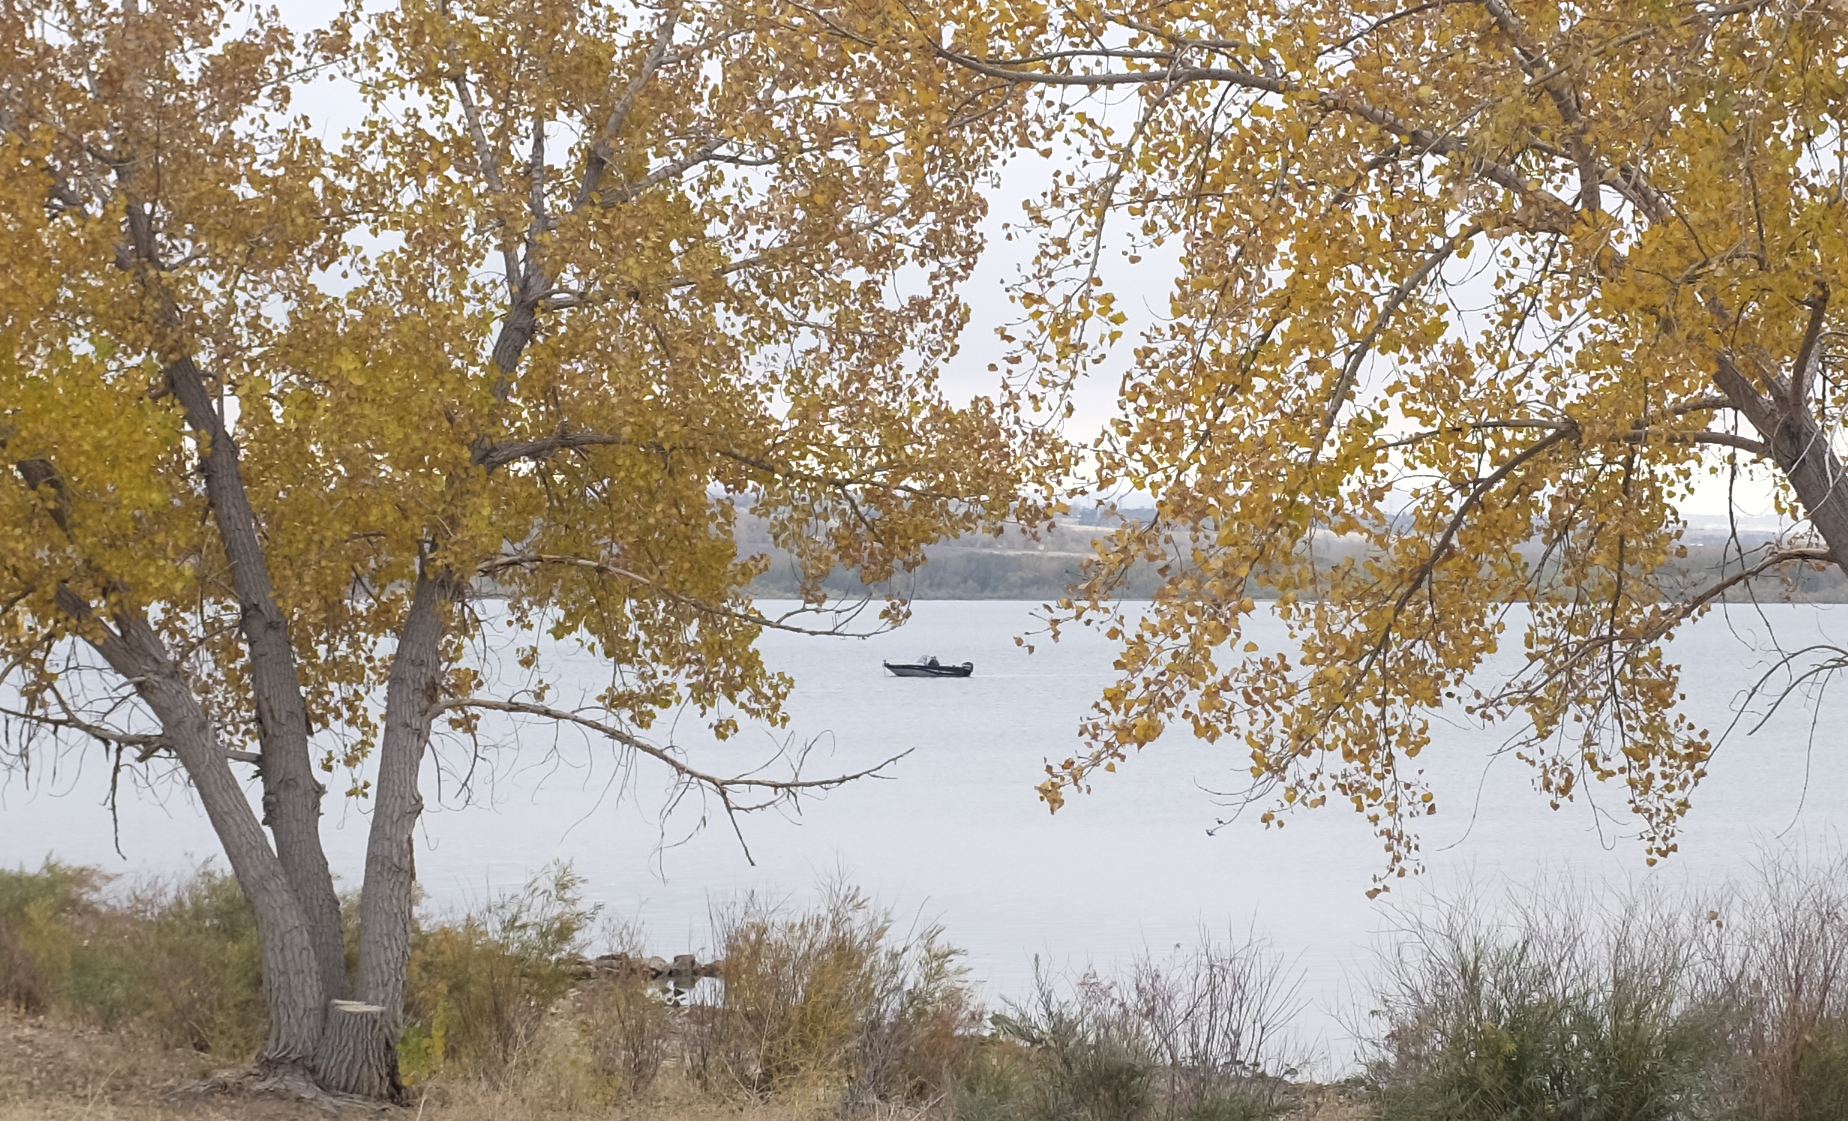 A boater floats in the waters at Chatfield Reservoir, near Denver, on Oct. 18. Reservoirs across the state reported surging or record use this year as the COVID-19 pandemic drove more people outdoors. Those higher numbers corresponded with increased inspections and interceptions of invasive mussels, which state authorities are trying to keep out of Colorado reservoirs.